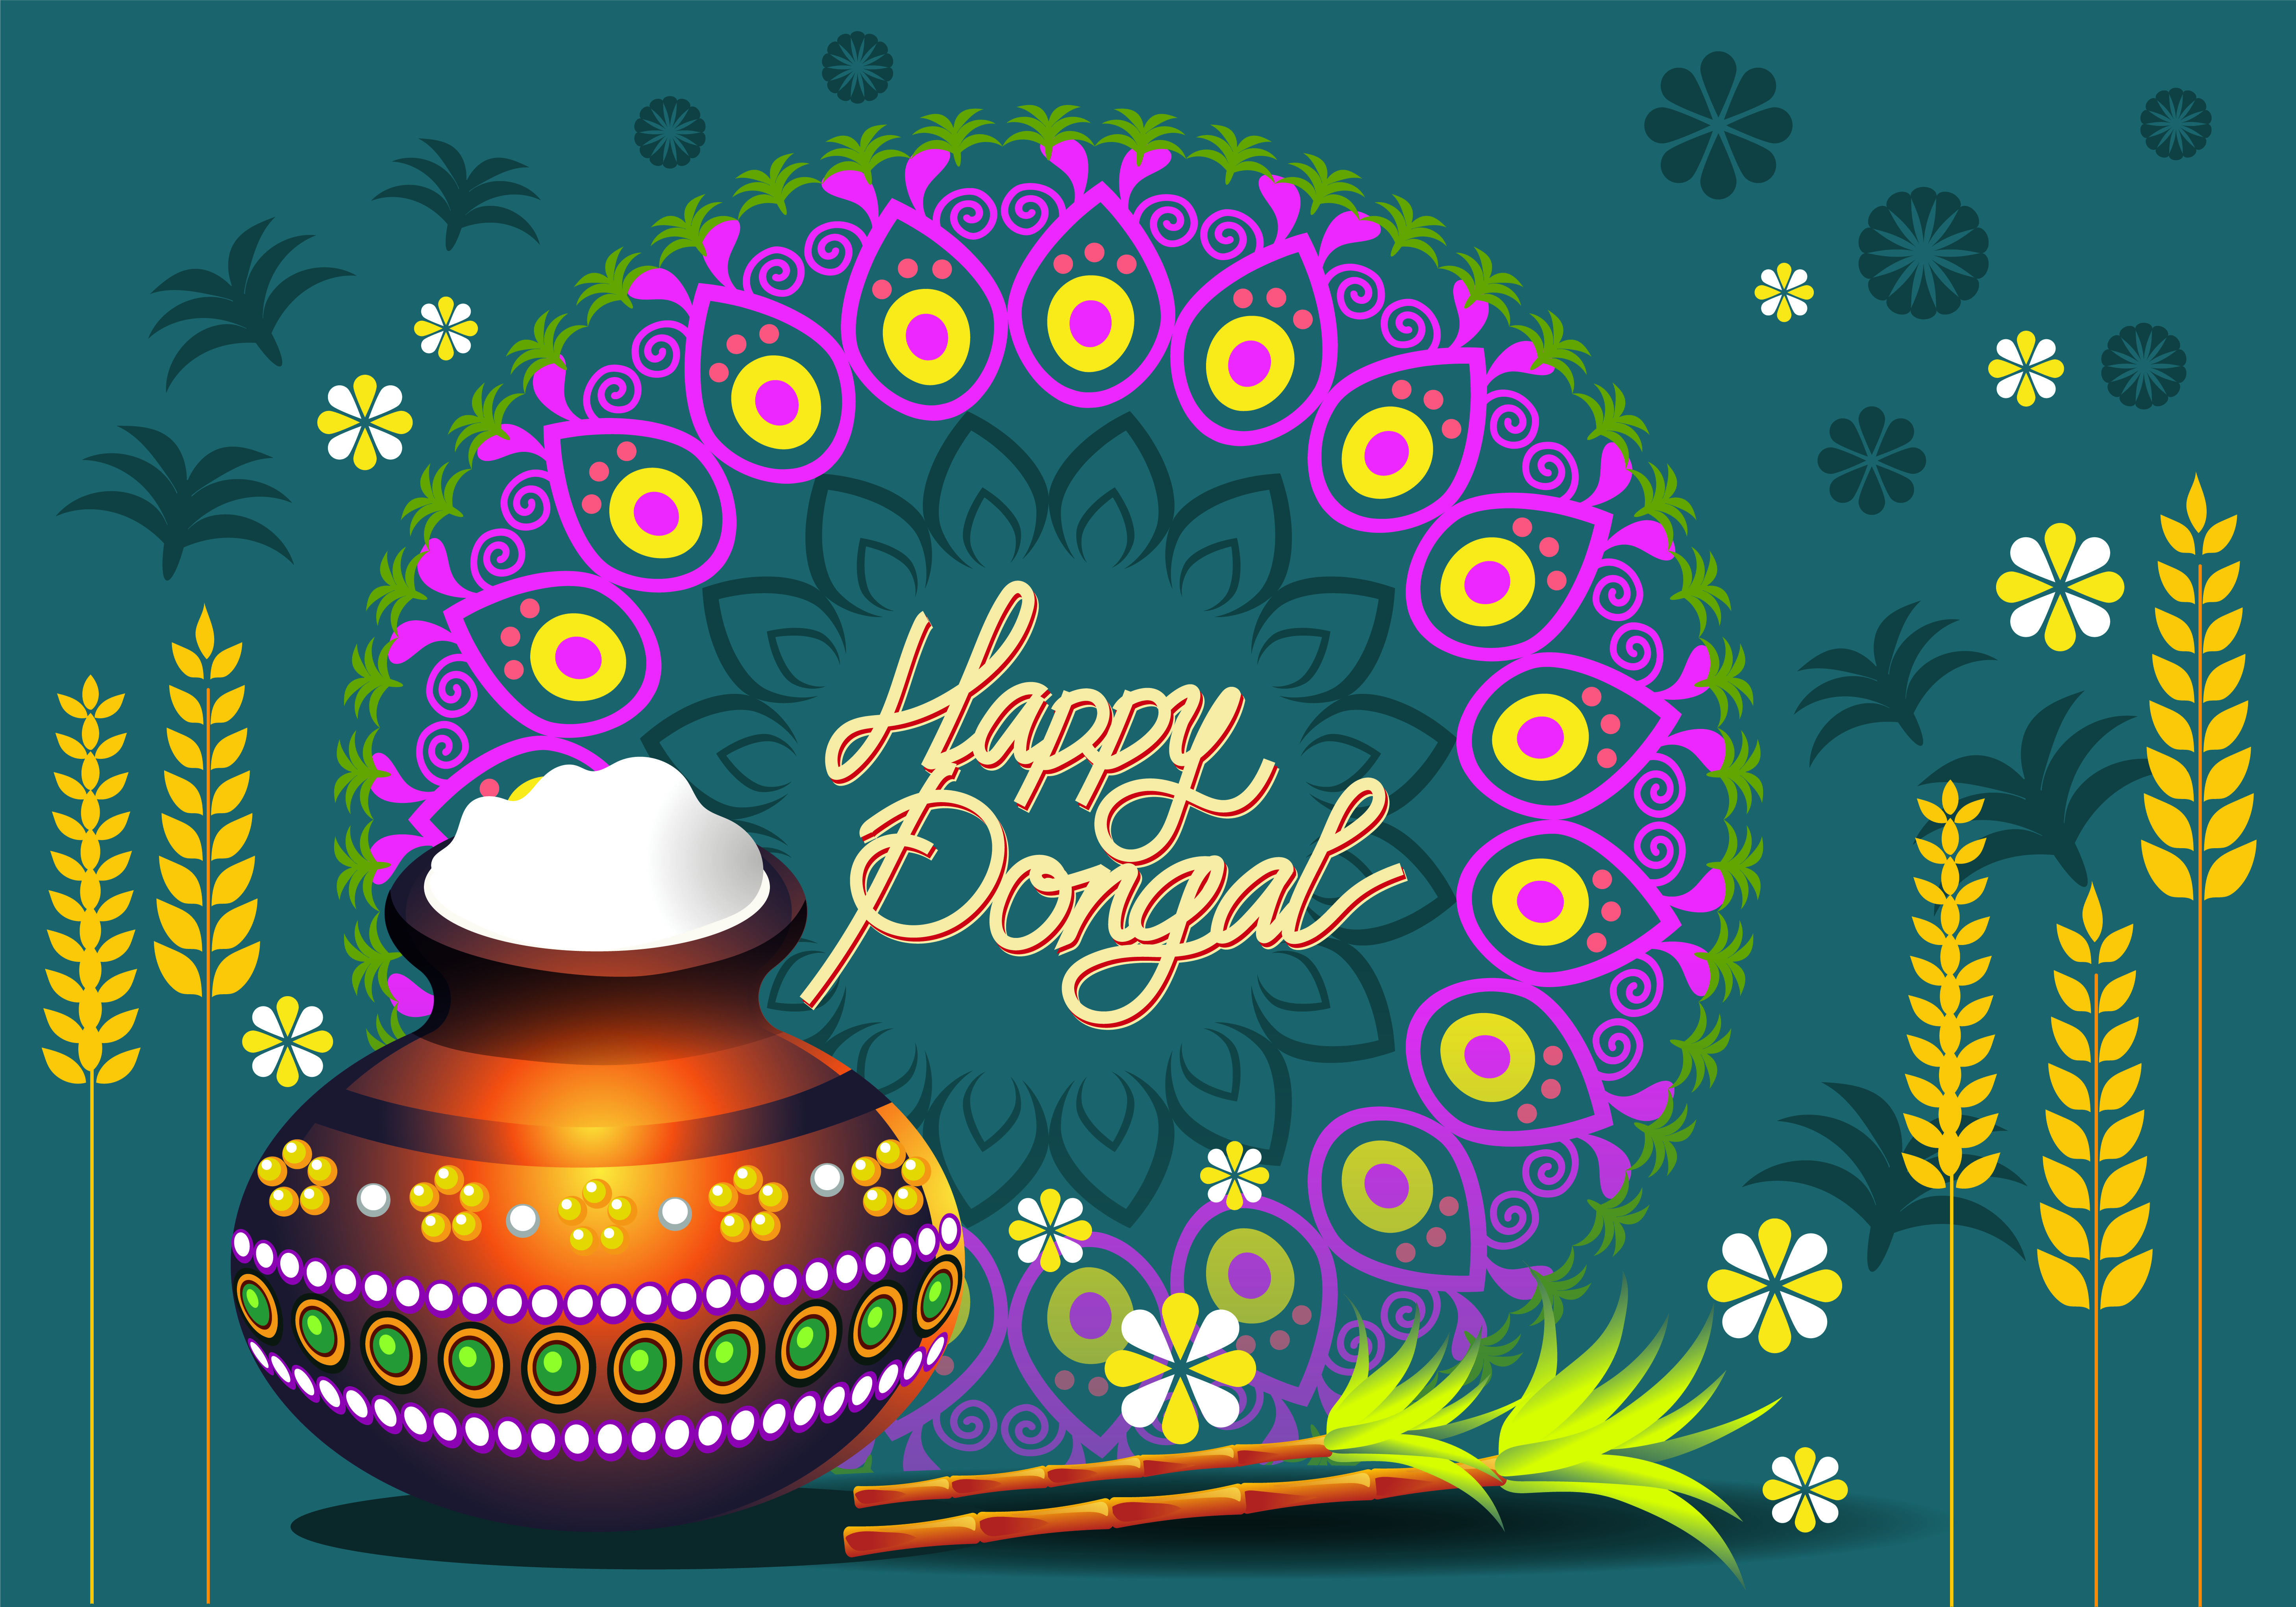 happy pongal festival wishes greetings hd background wallpaper